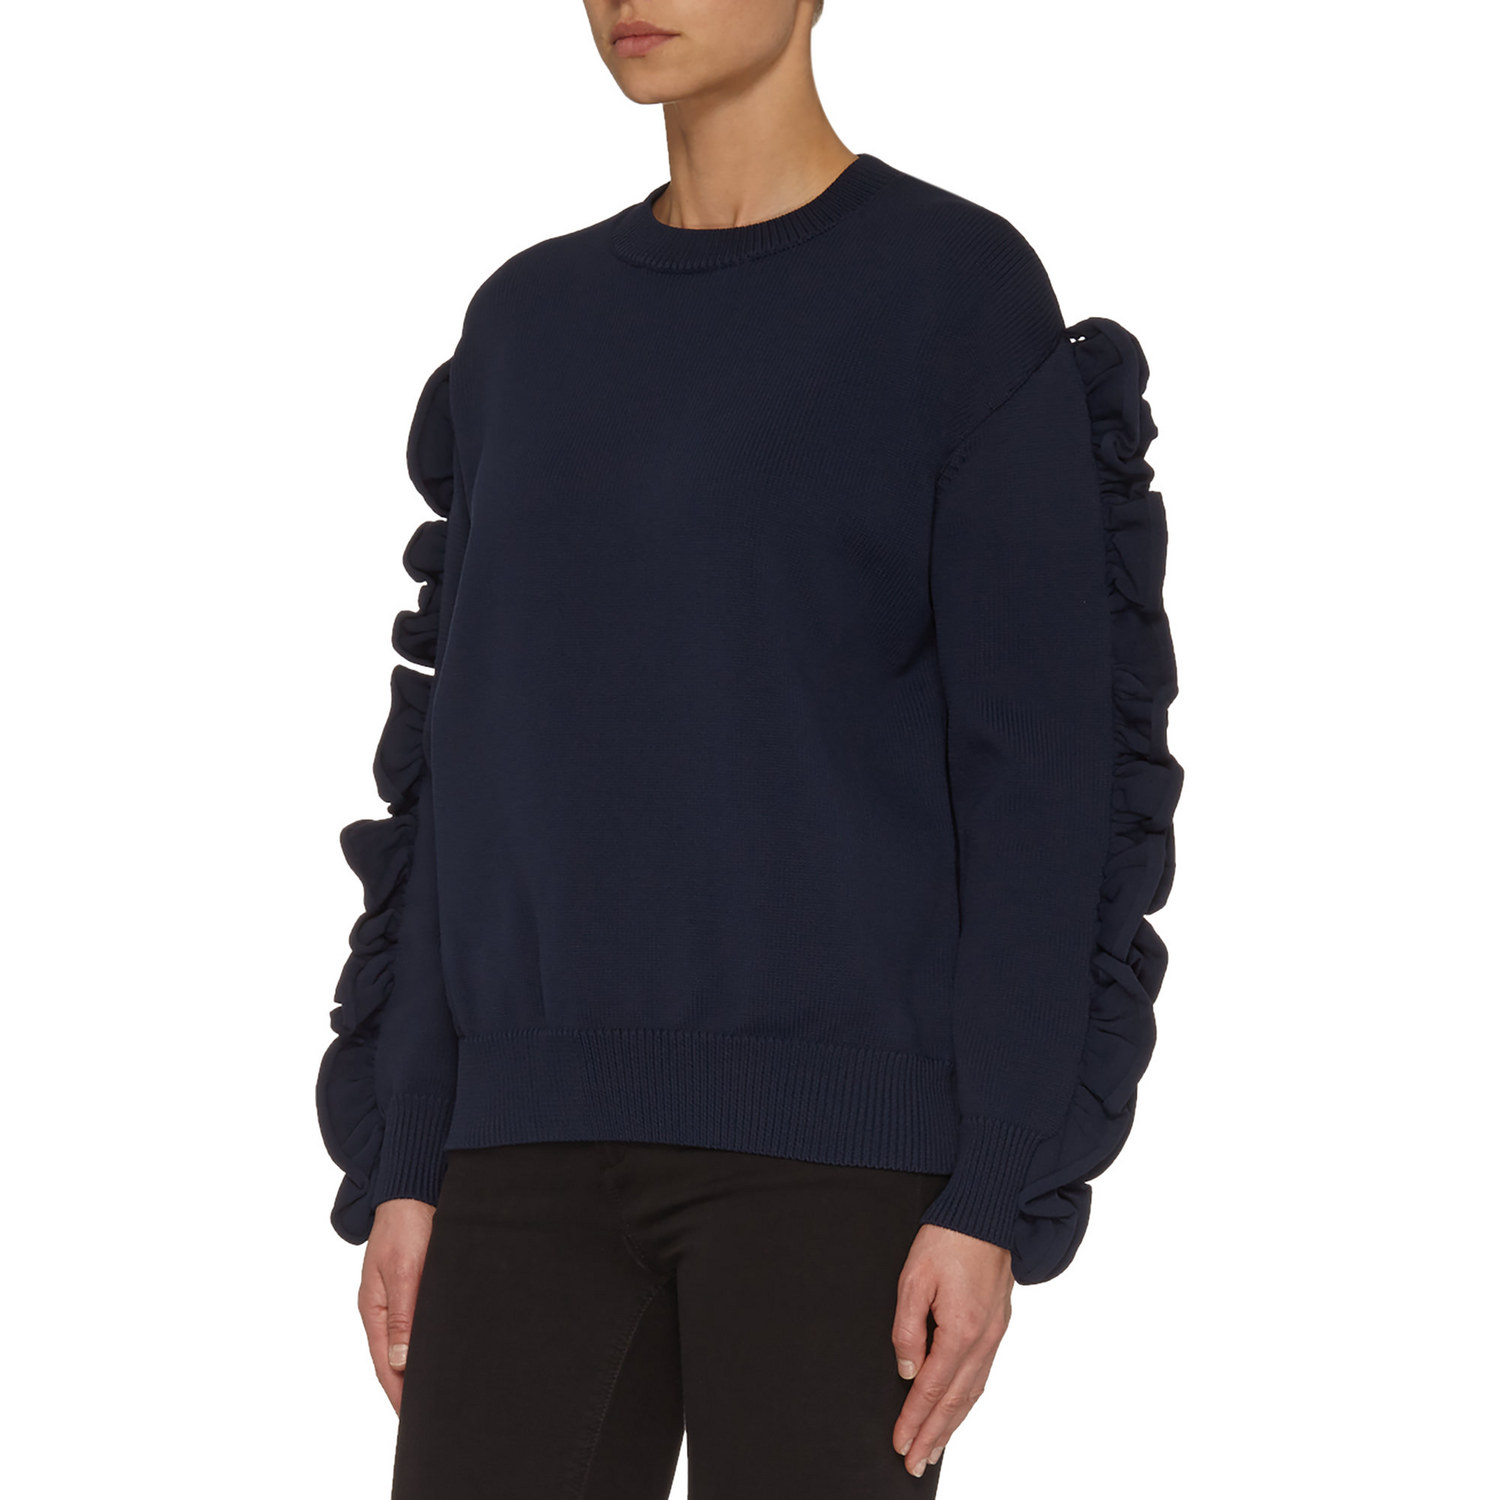 Victoria Beckham; Ruffle Sleeve Sweater €390; Brown Thomas http://www.brownthomas.com/brown-thomas-navigation-catalog/ruffle-sleevesweater/17x3963xkntvv014navy.html?cgid=root#q=ruffle&lang=default&start